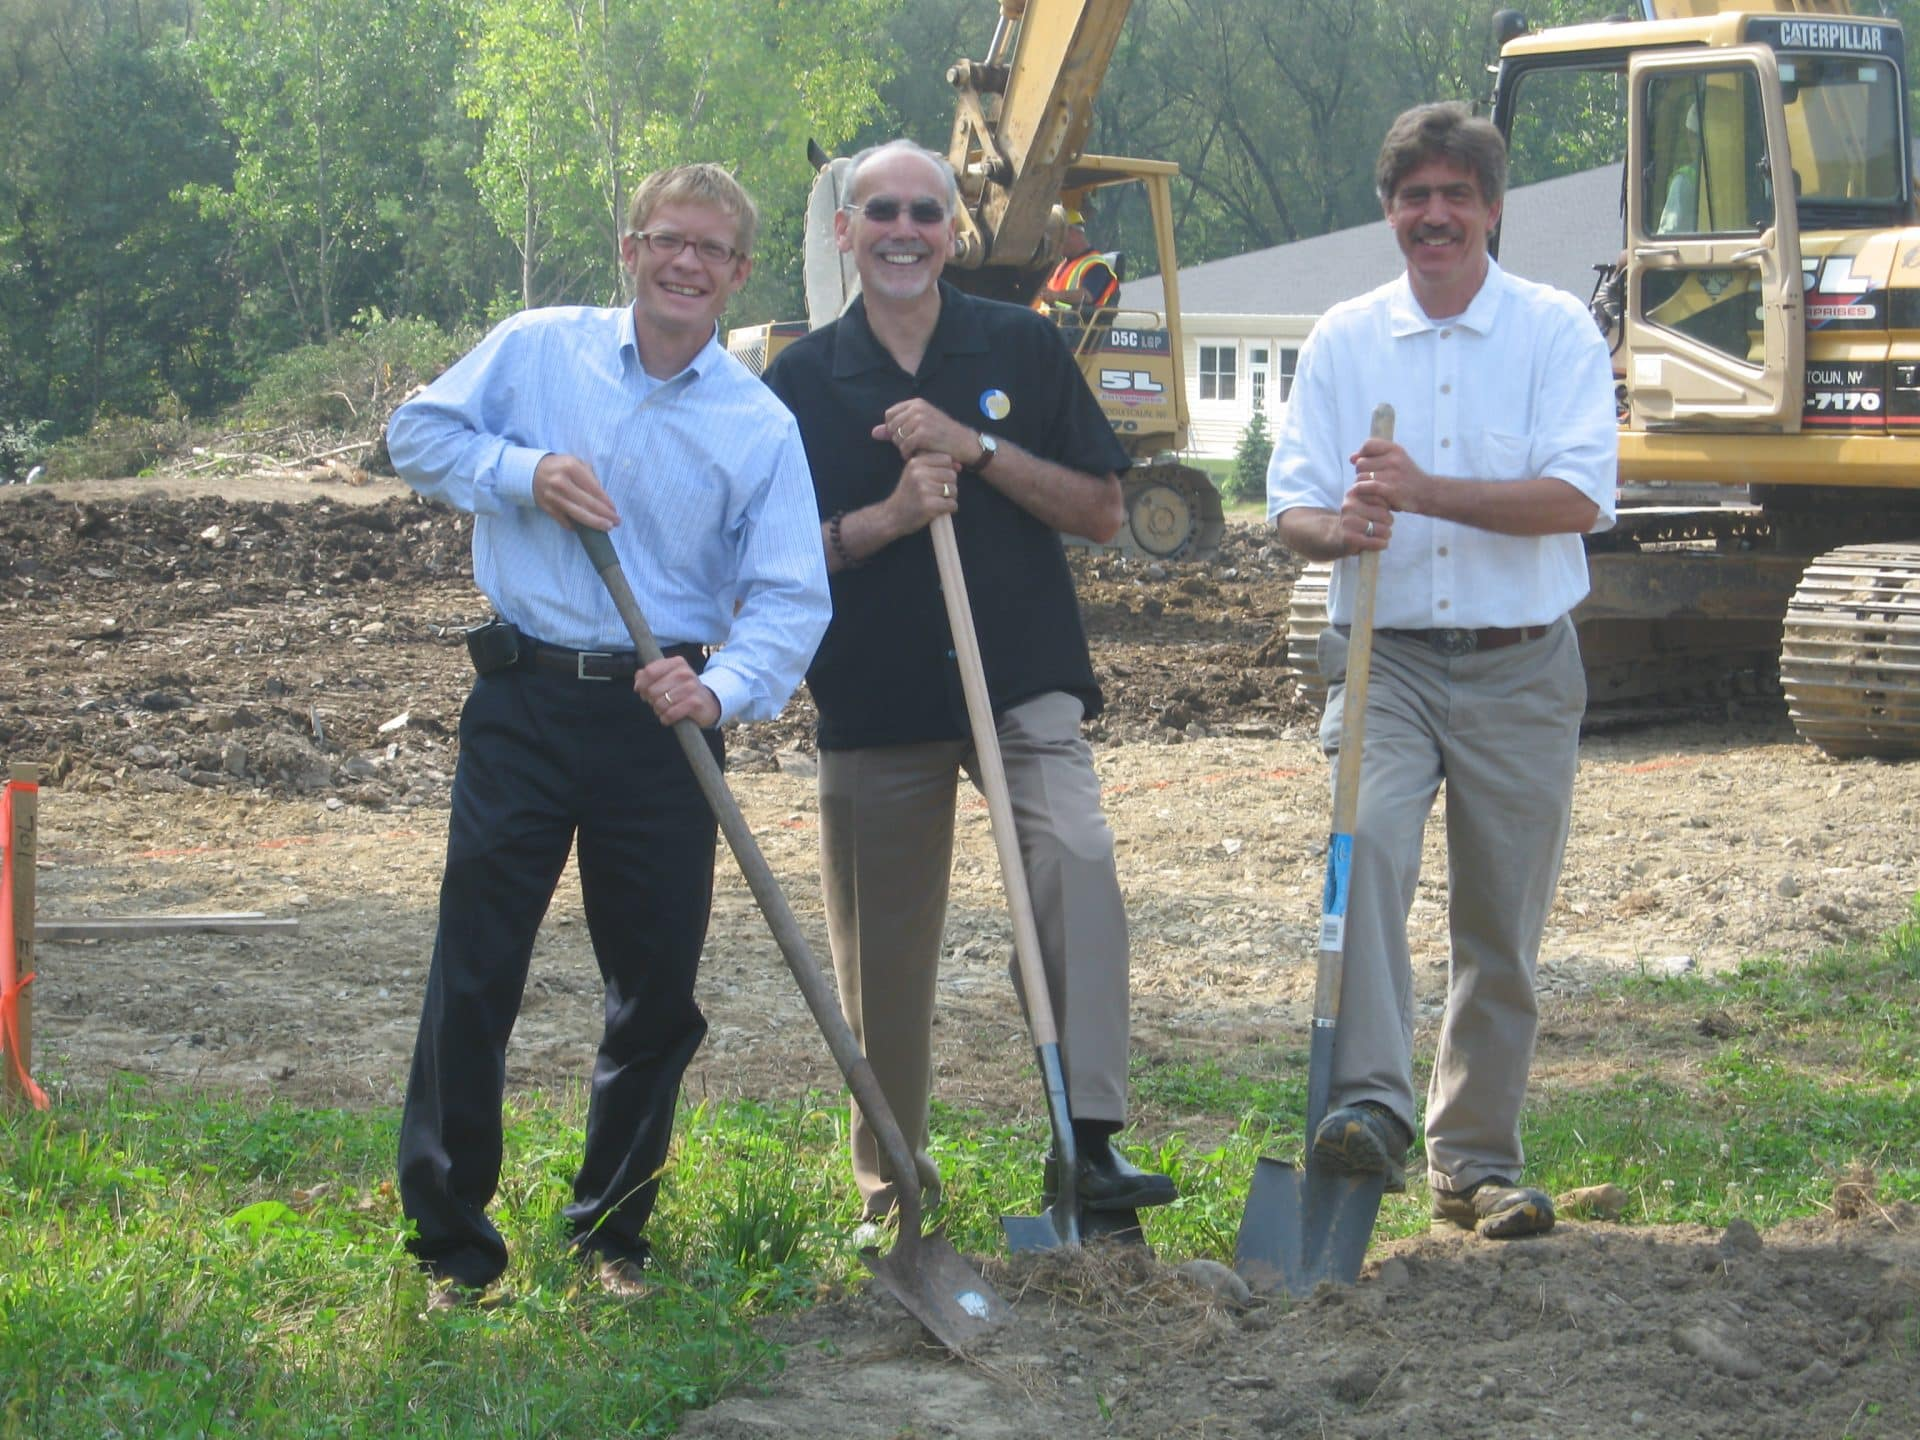 POA breaking ground image with client and architect.